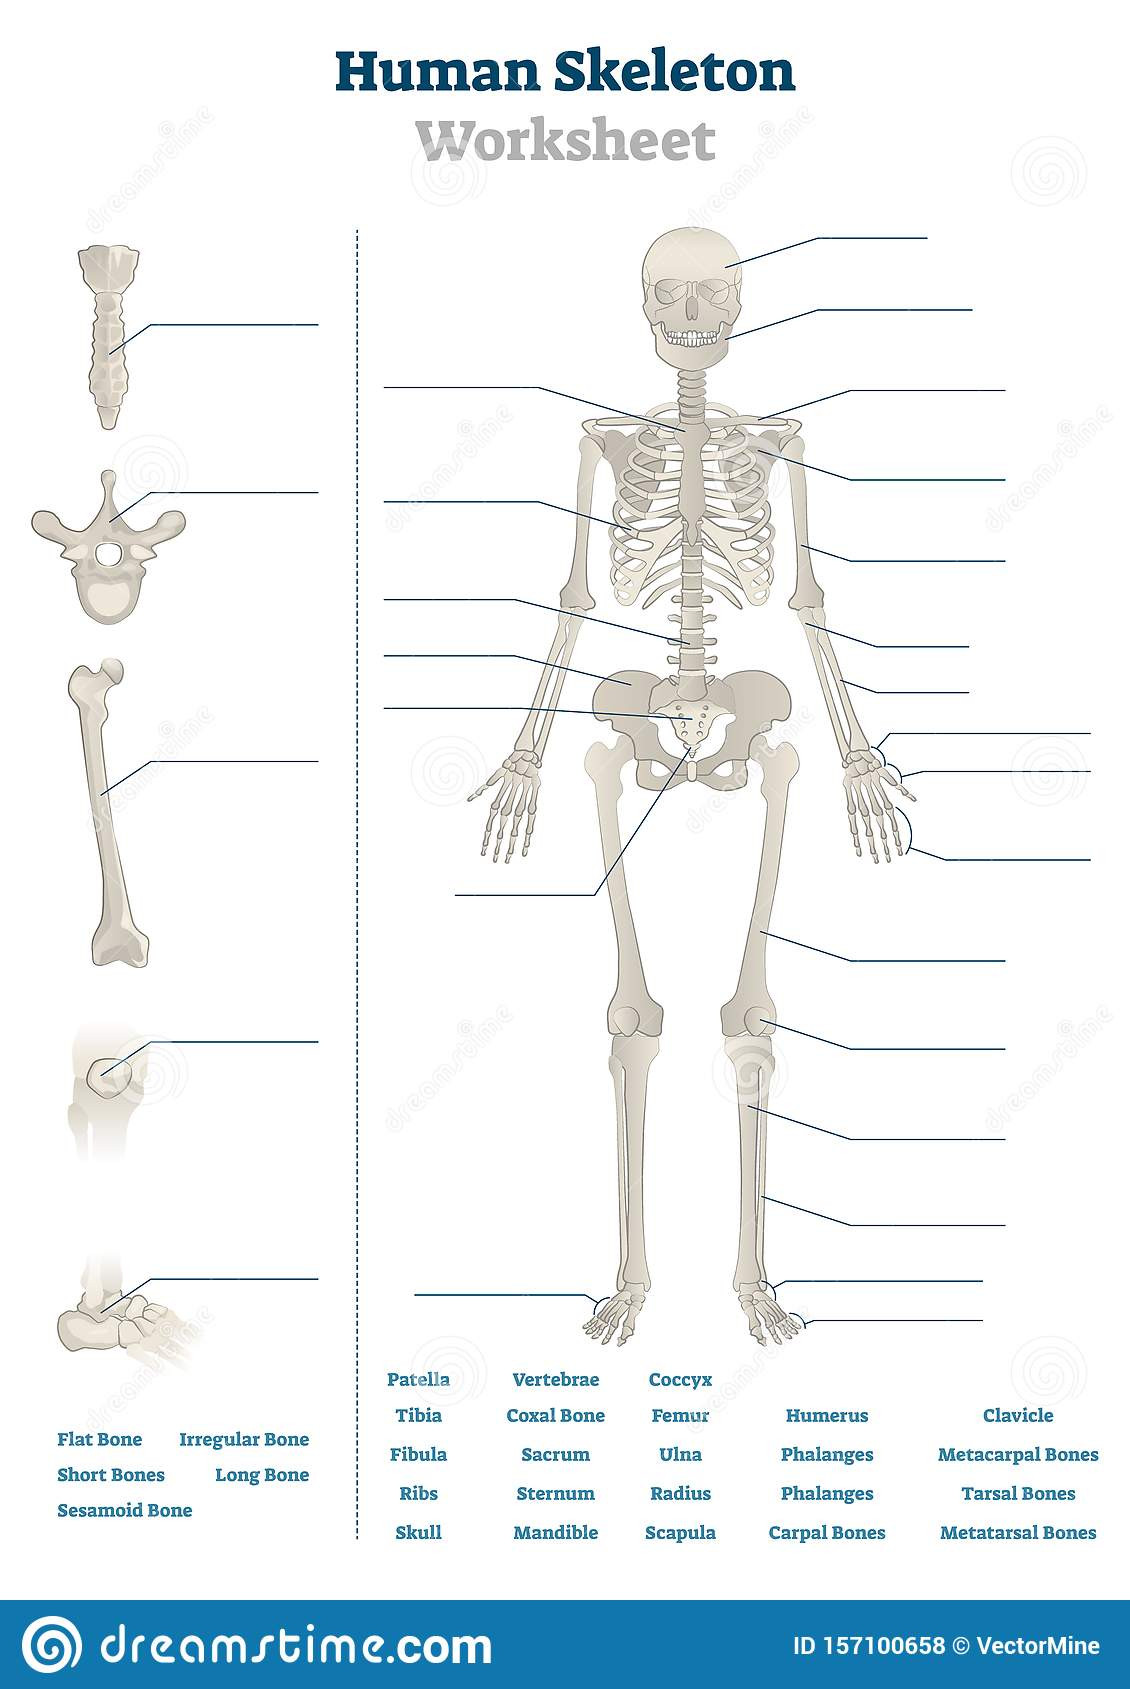 Free Printable Human Anatomy Worksheets Human Skeleton Worksheet Vector Illustration Blank